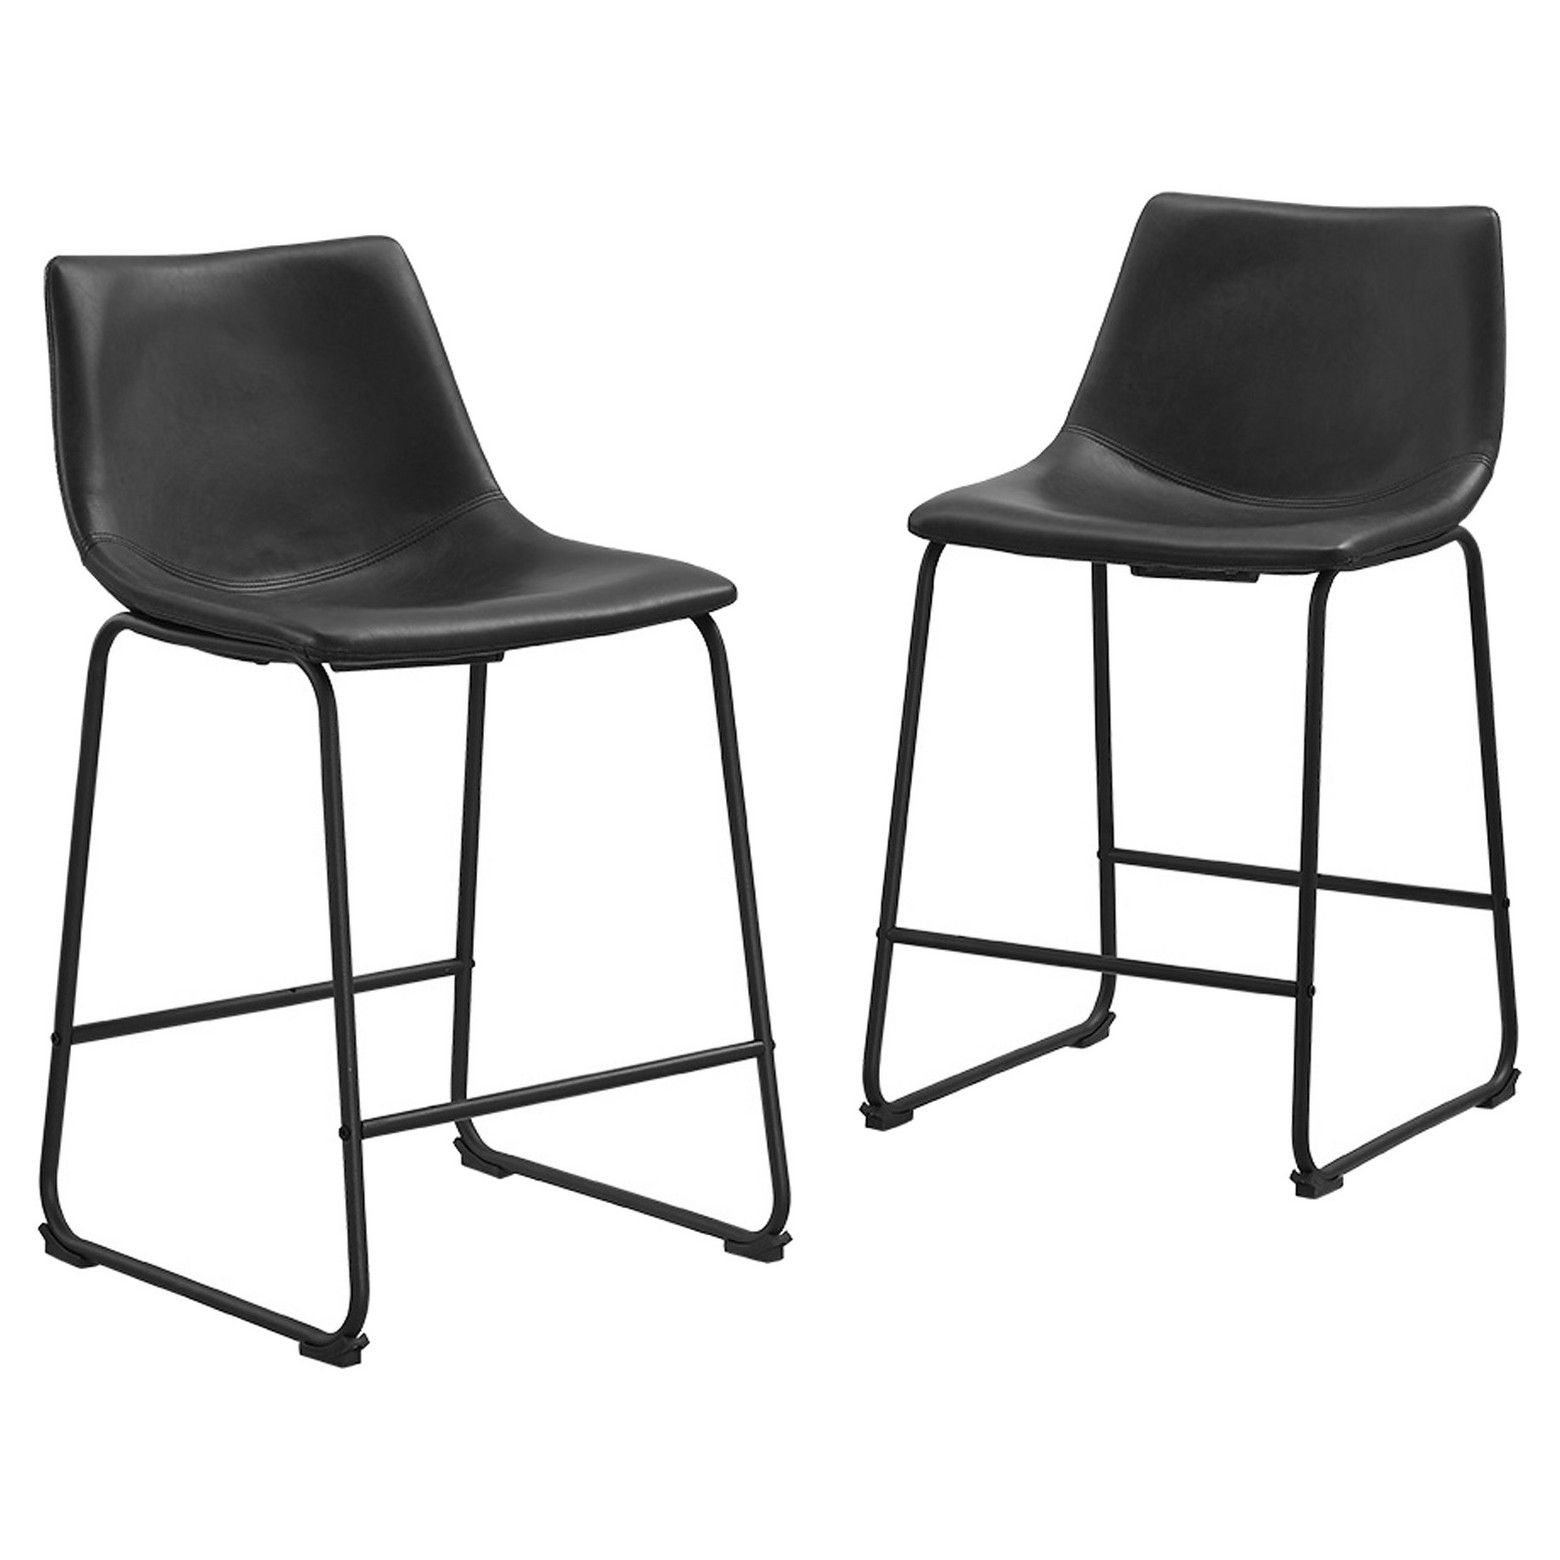 Set Of 2 Faux Leather Dining Kitchen Counter Stools Saracina